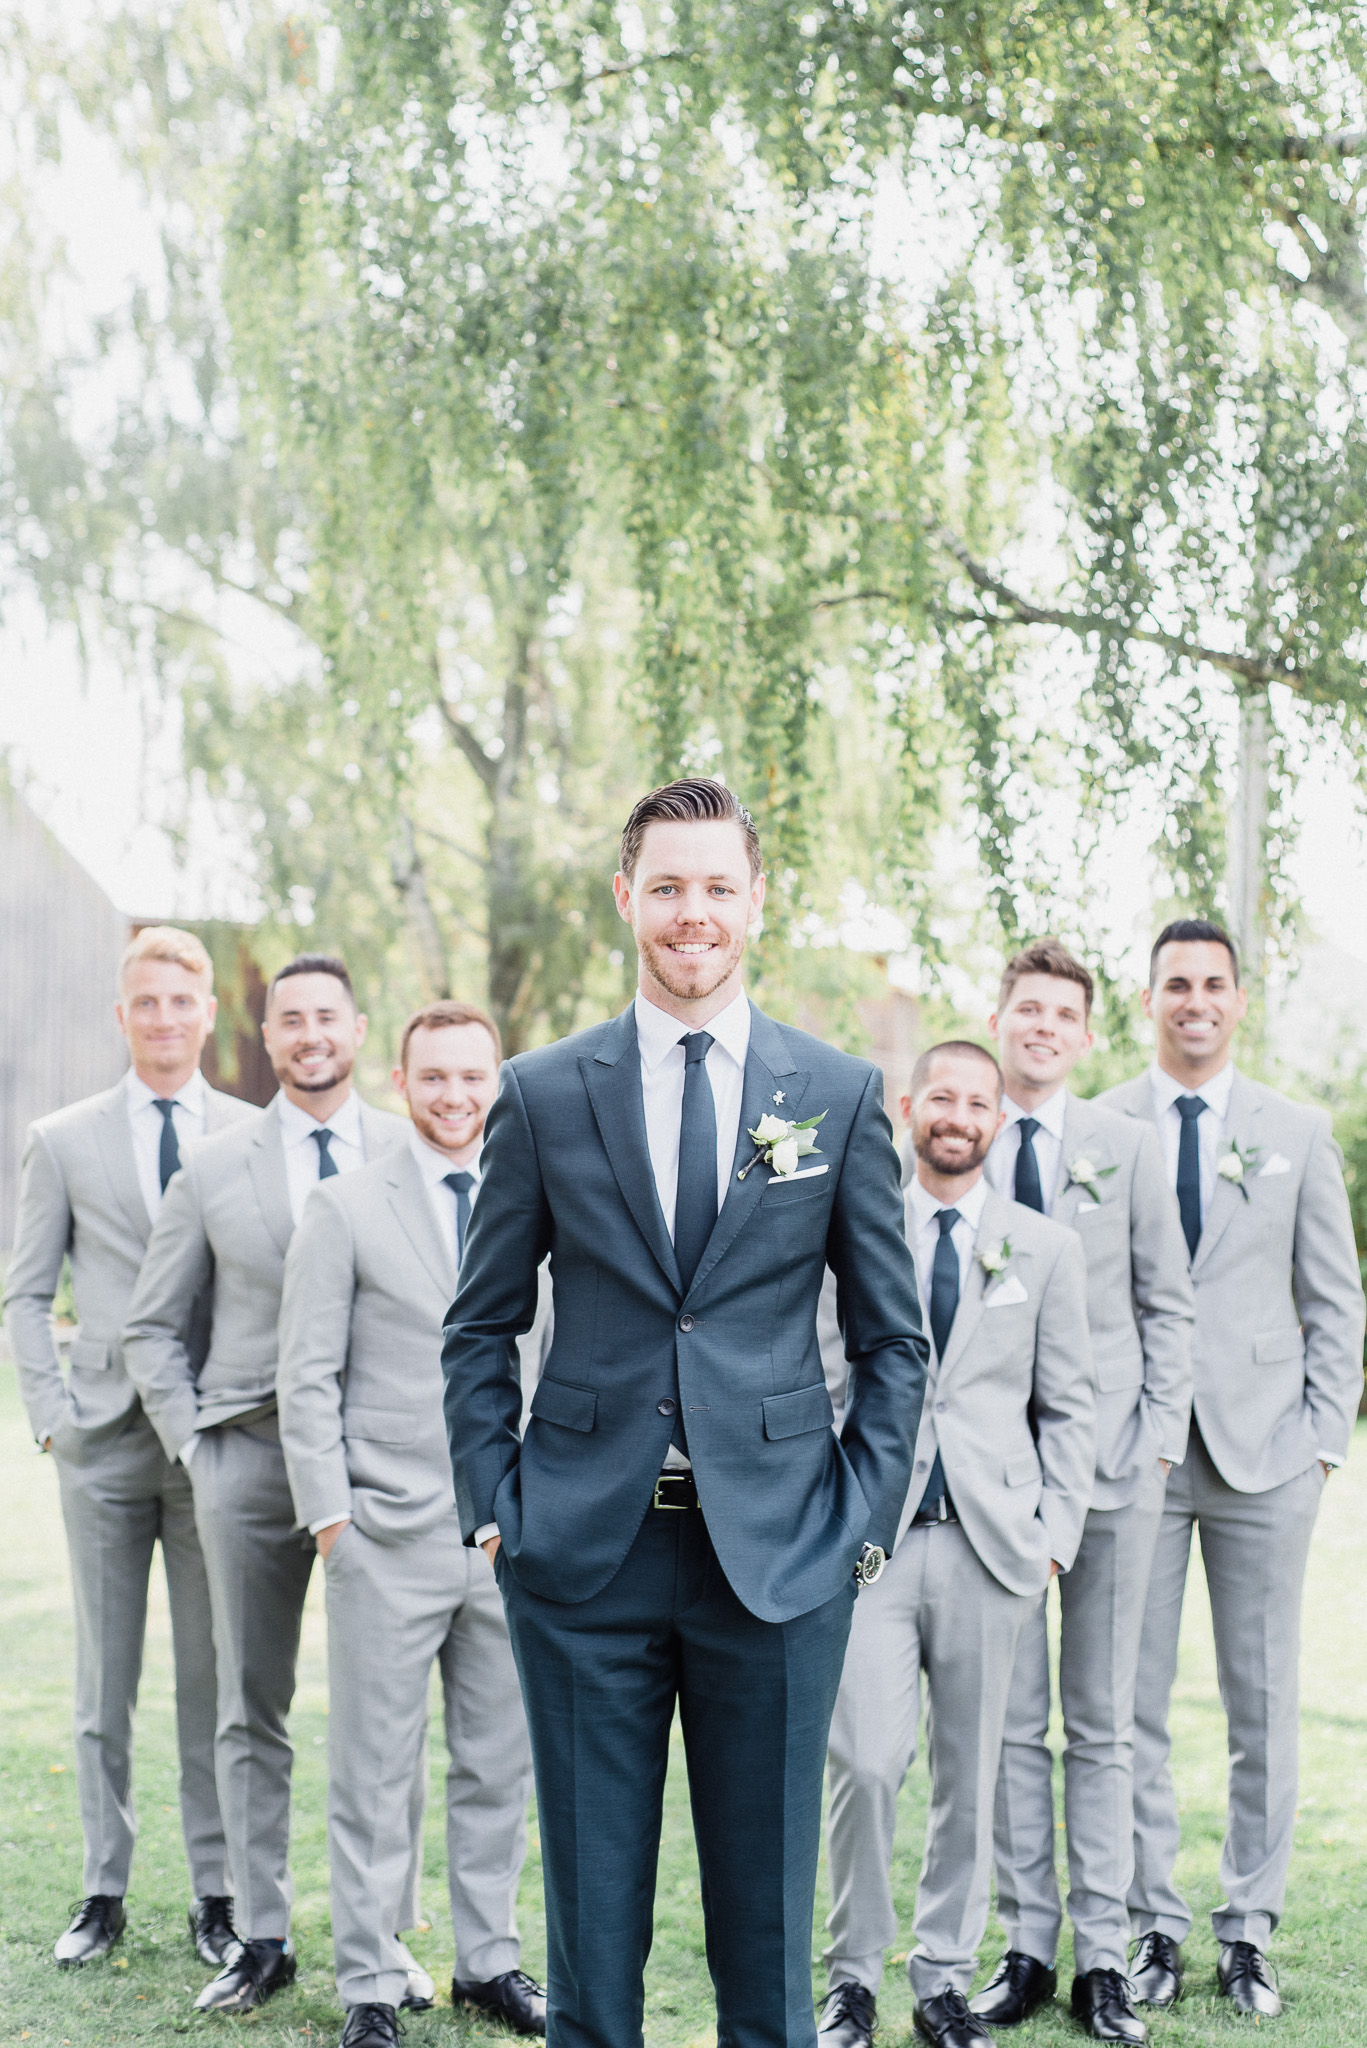 Mismatched groom and groomsmen suits by Jenn Kavanagh Photography